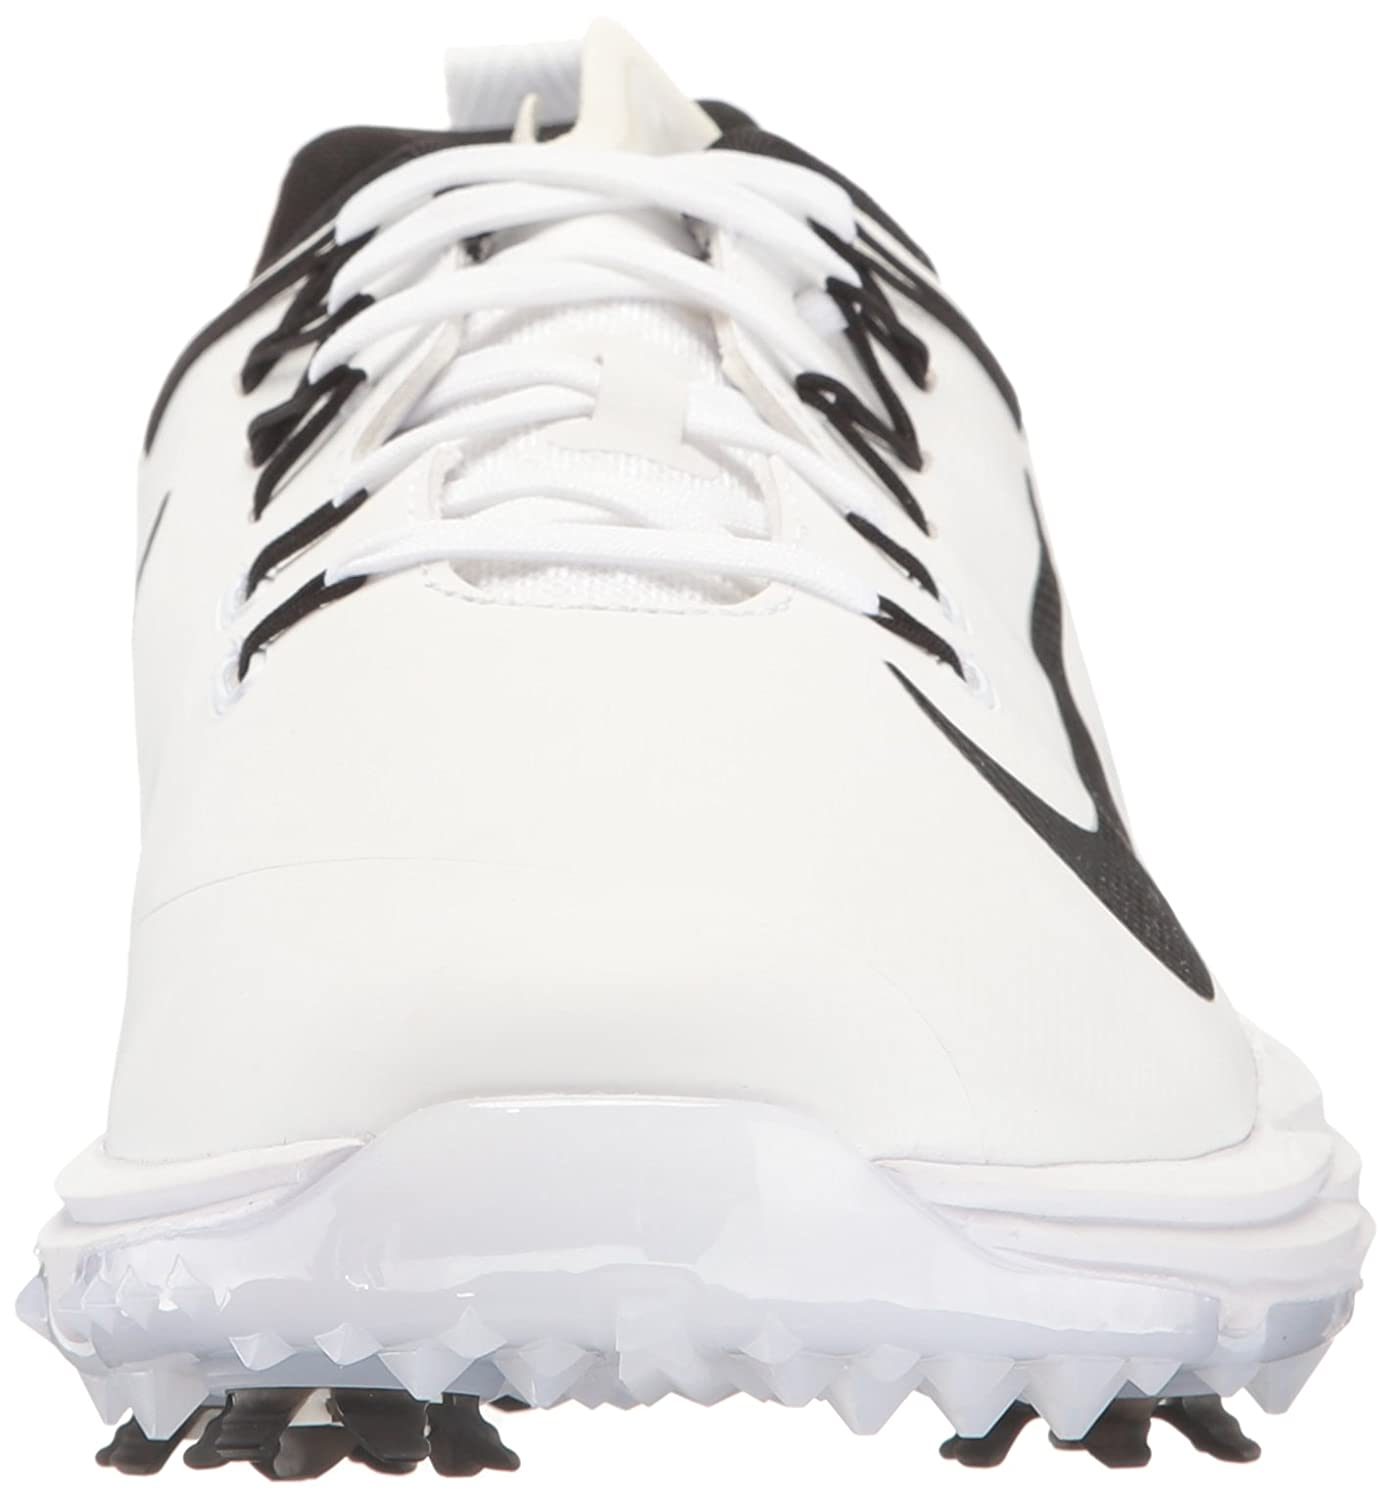 new arrival 2032c 24361 Amazon.com   Nike Men s Lunar Command 2 Golf Shoe   Fashion Sneakers